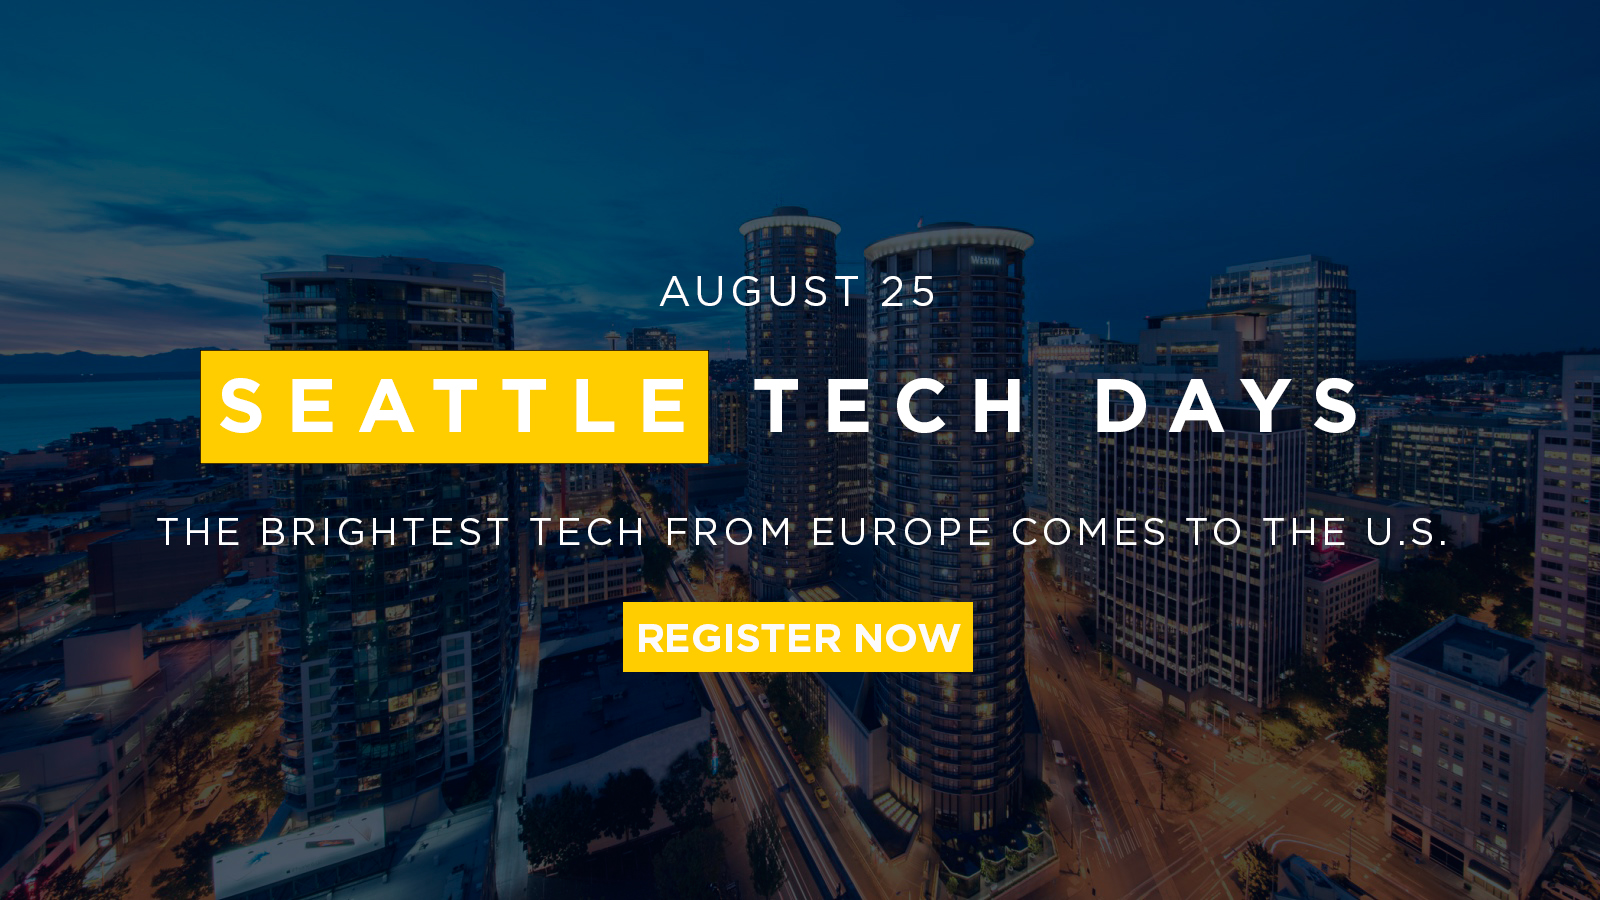 SEATTLE TECH DAYS